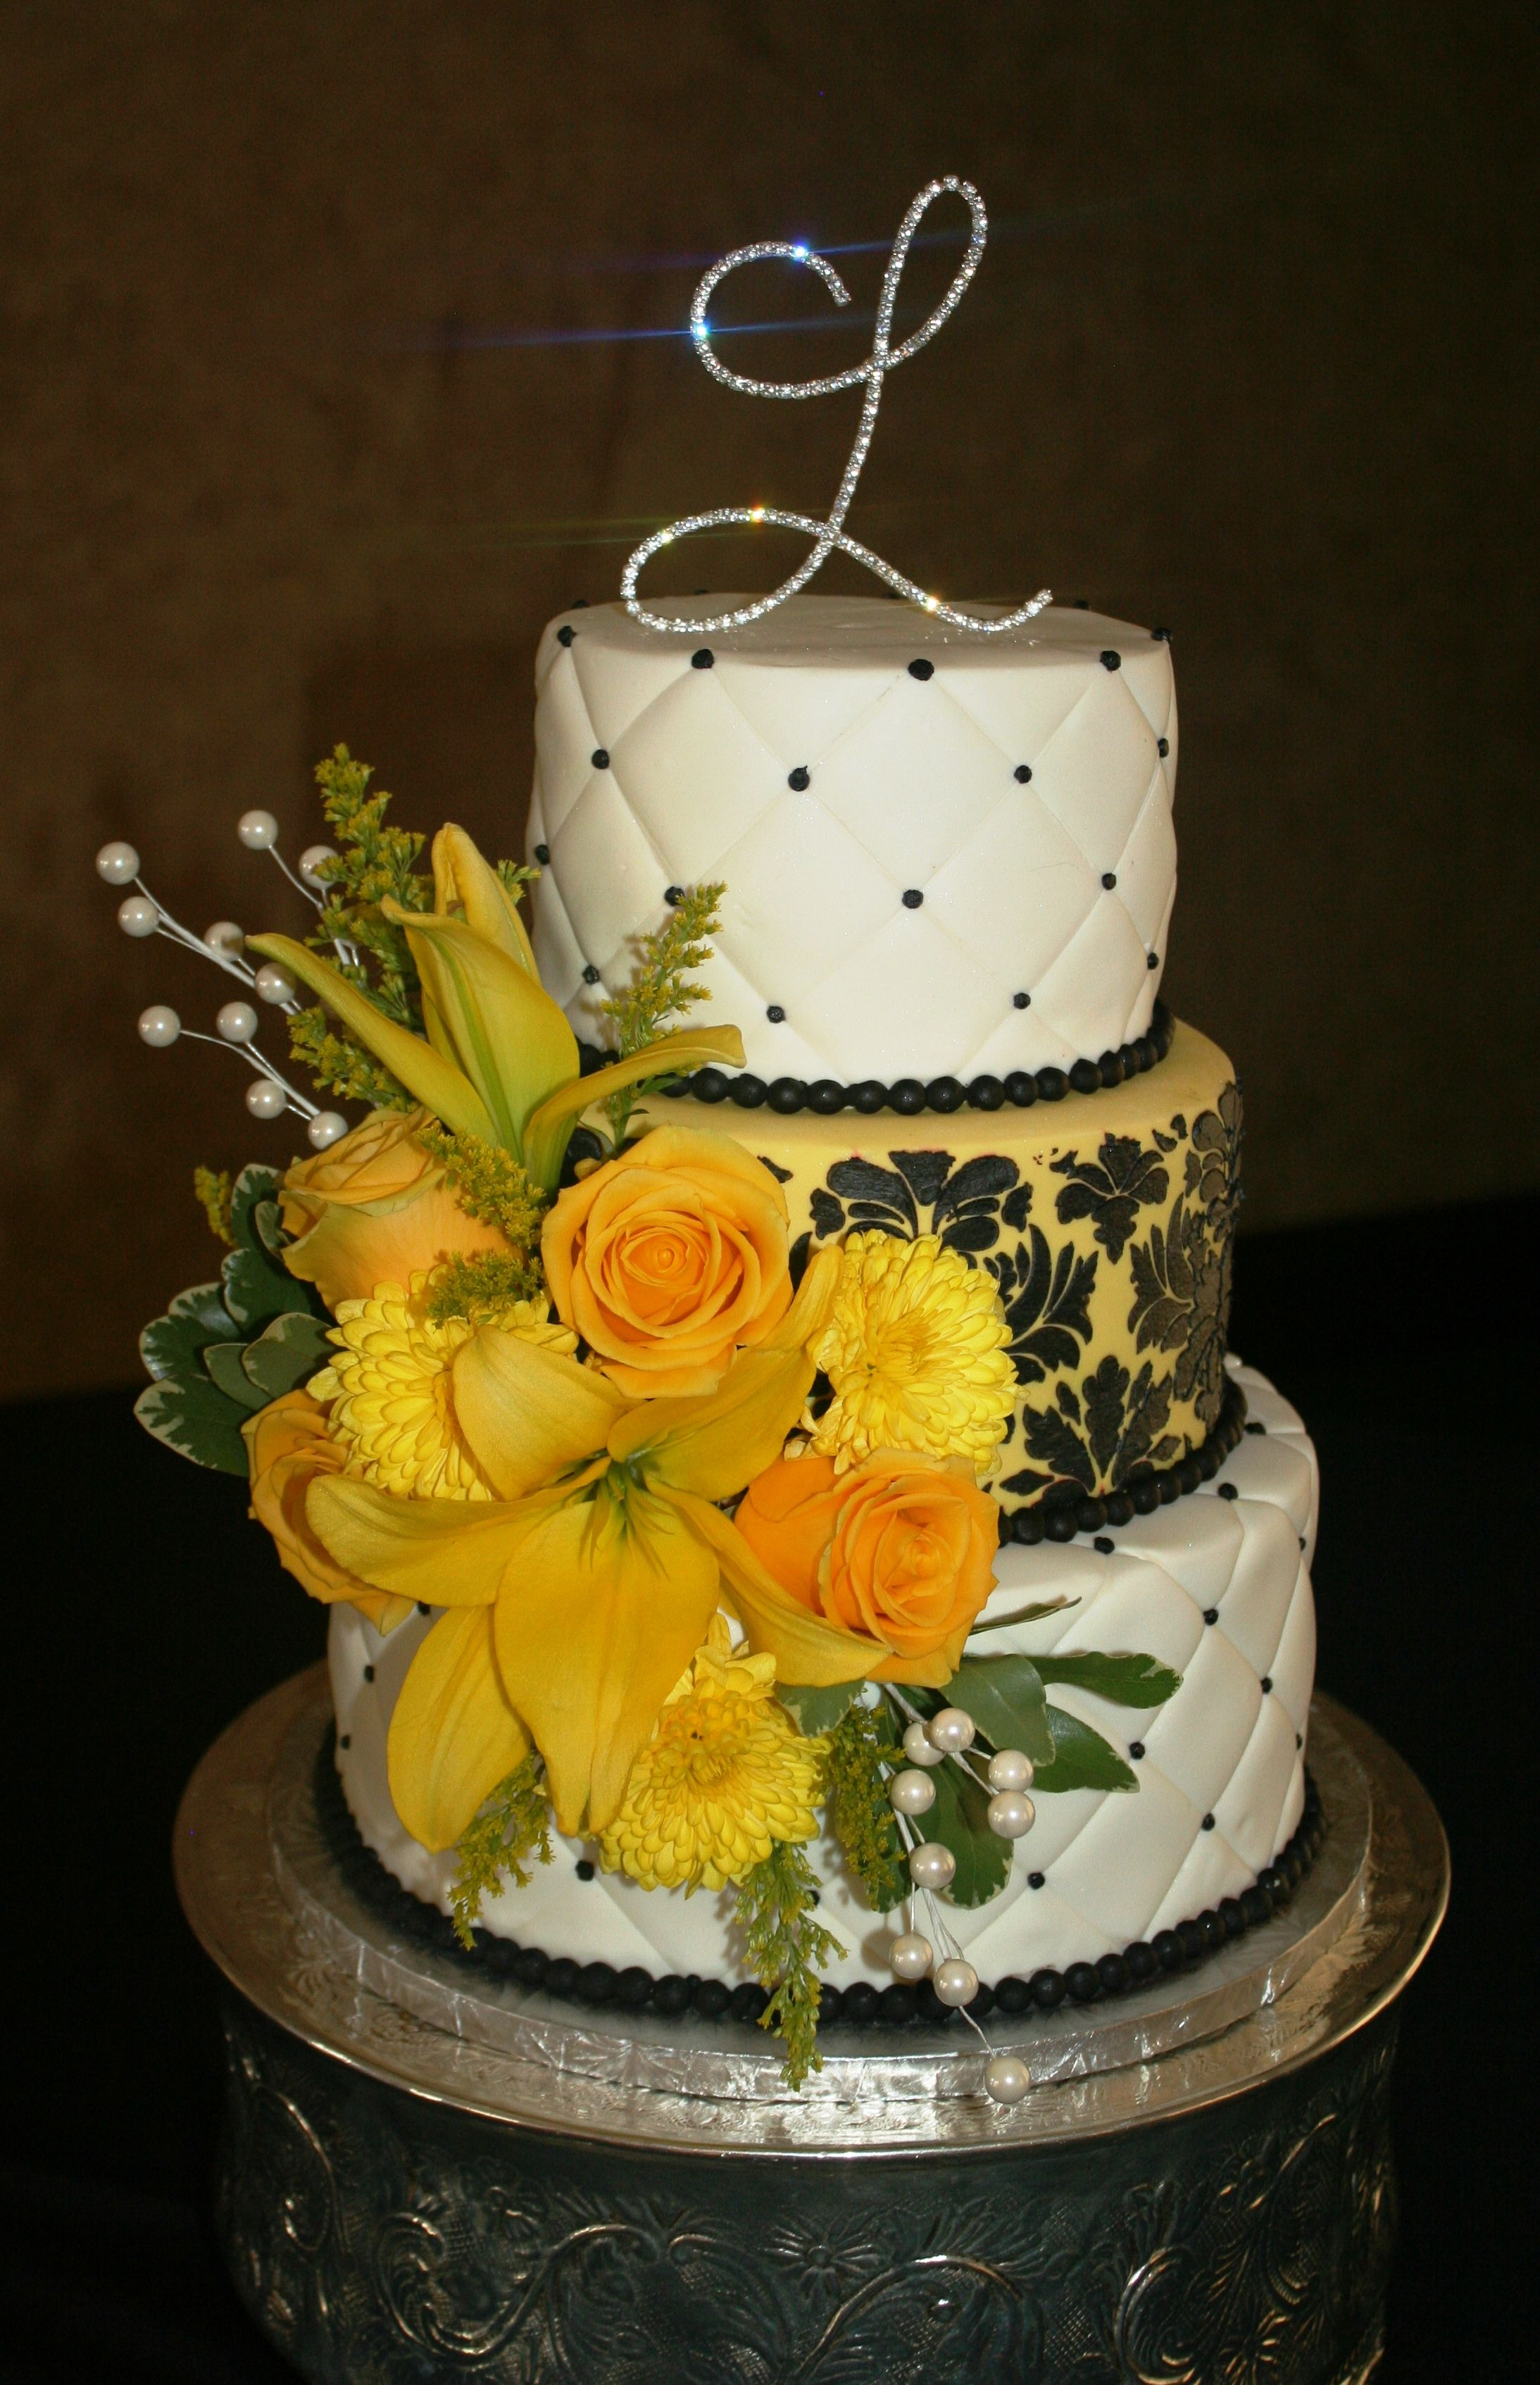 Wedding cakes are no longer simply white. The yellow middle tier of ...